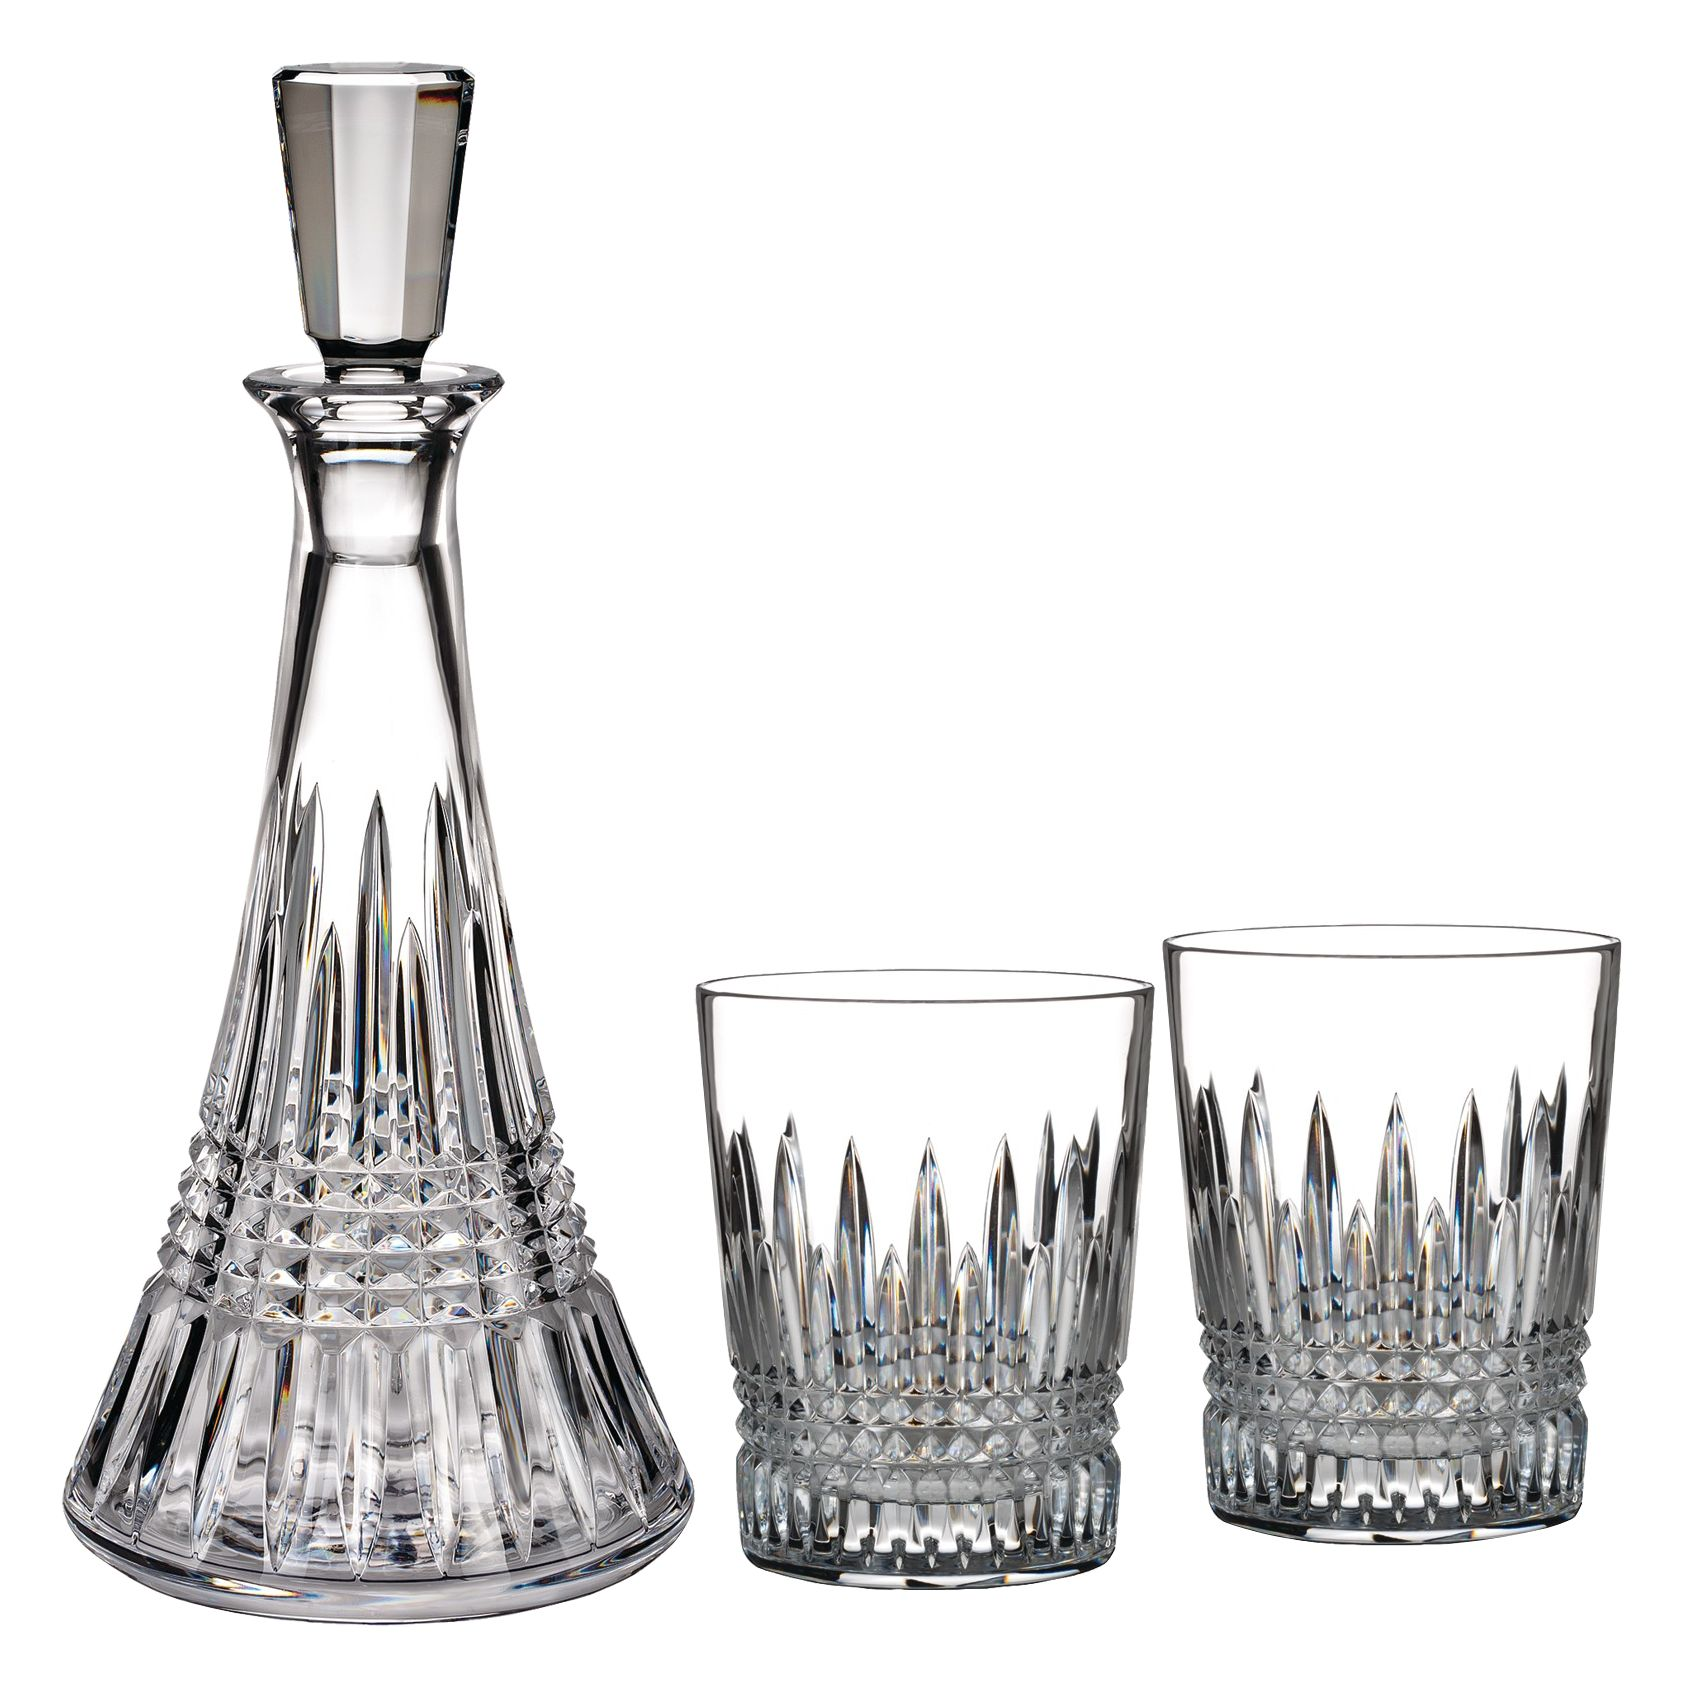 Waterford Waterford Lismore Diamond Cut Lead Crystal Decanter and Tumblers Set